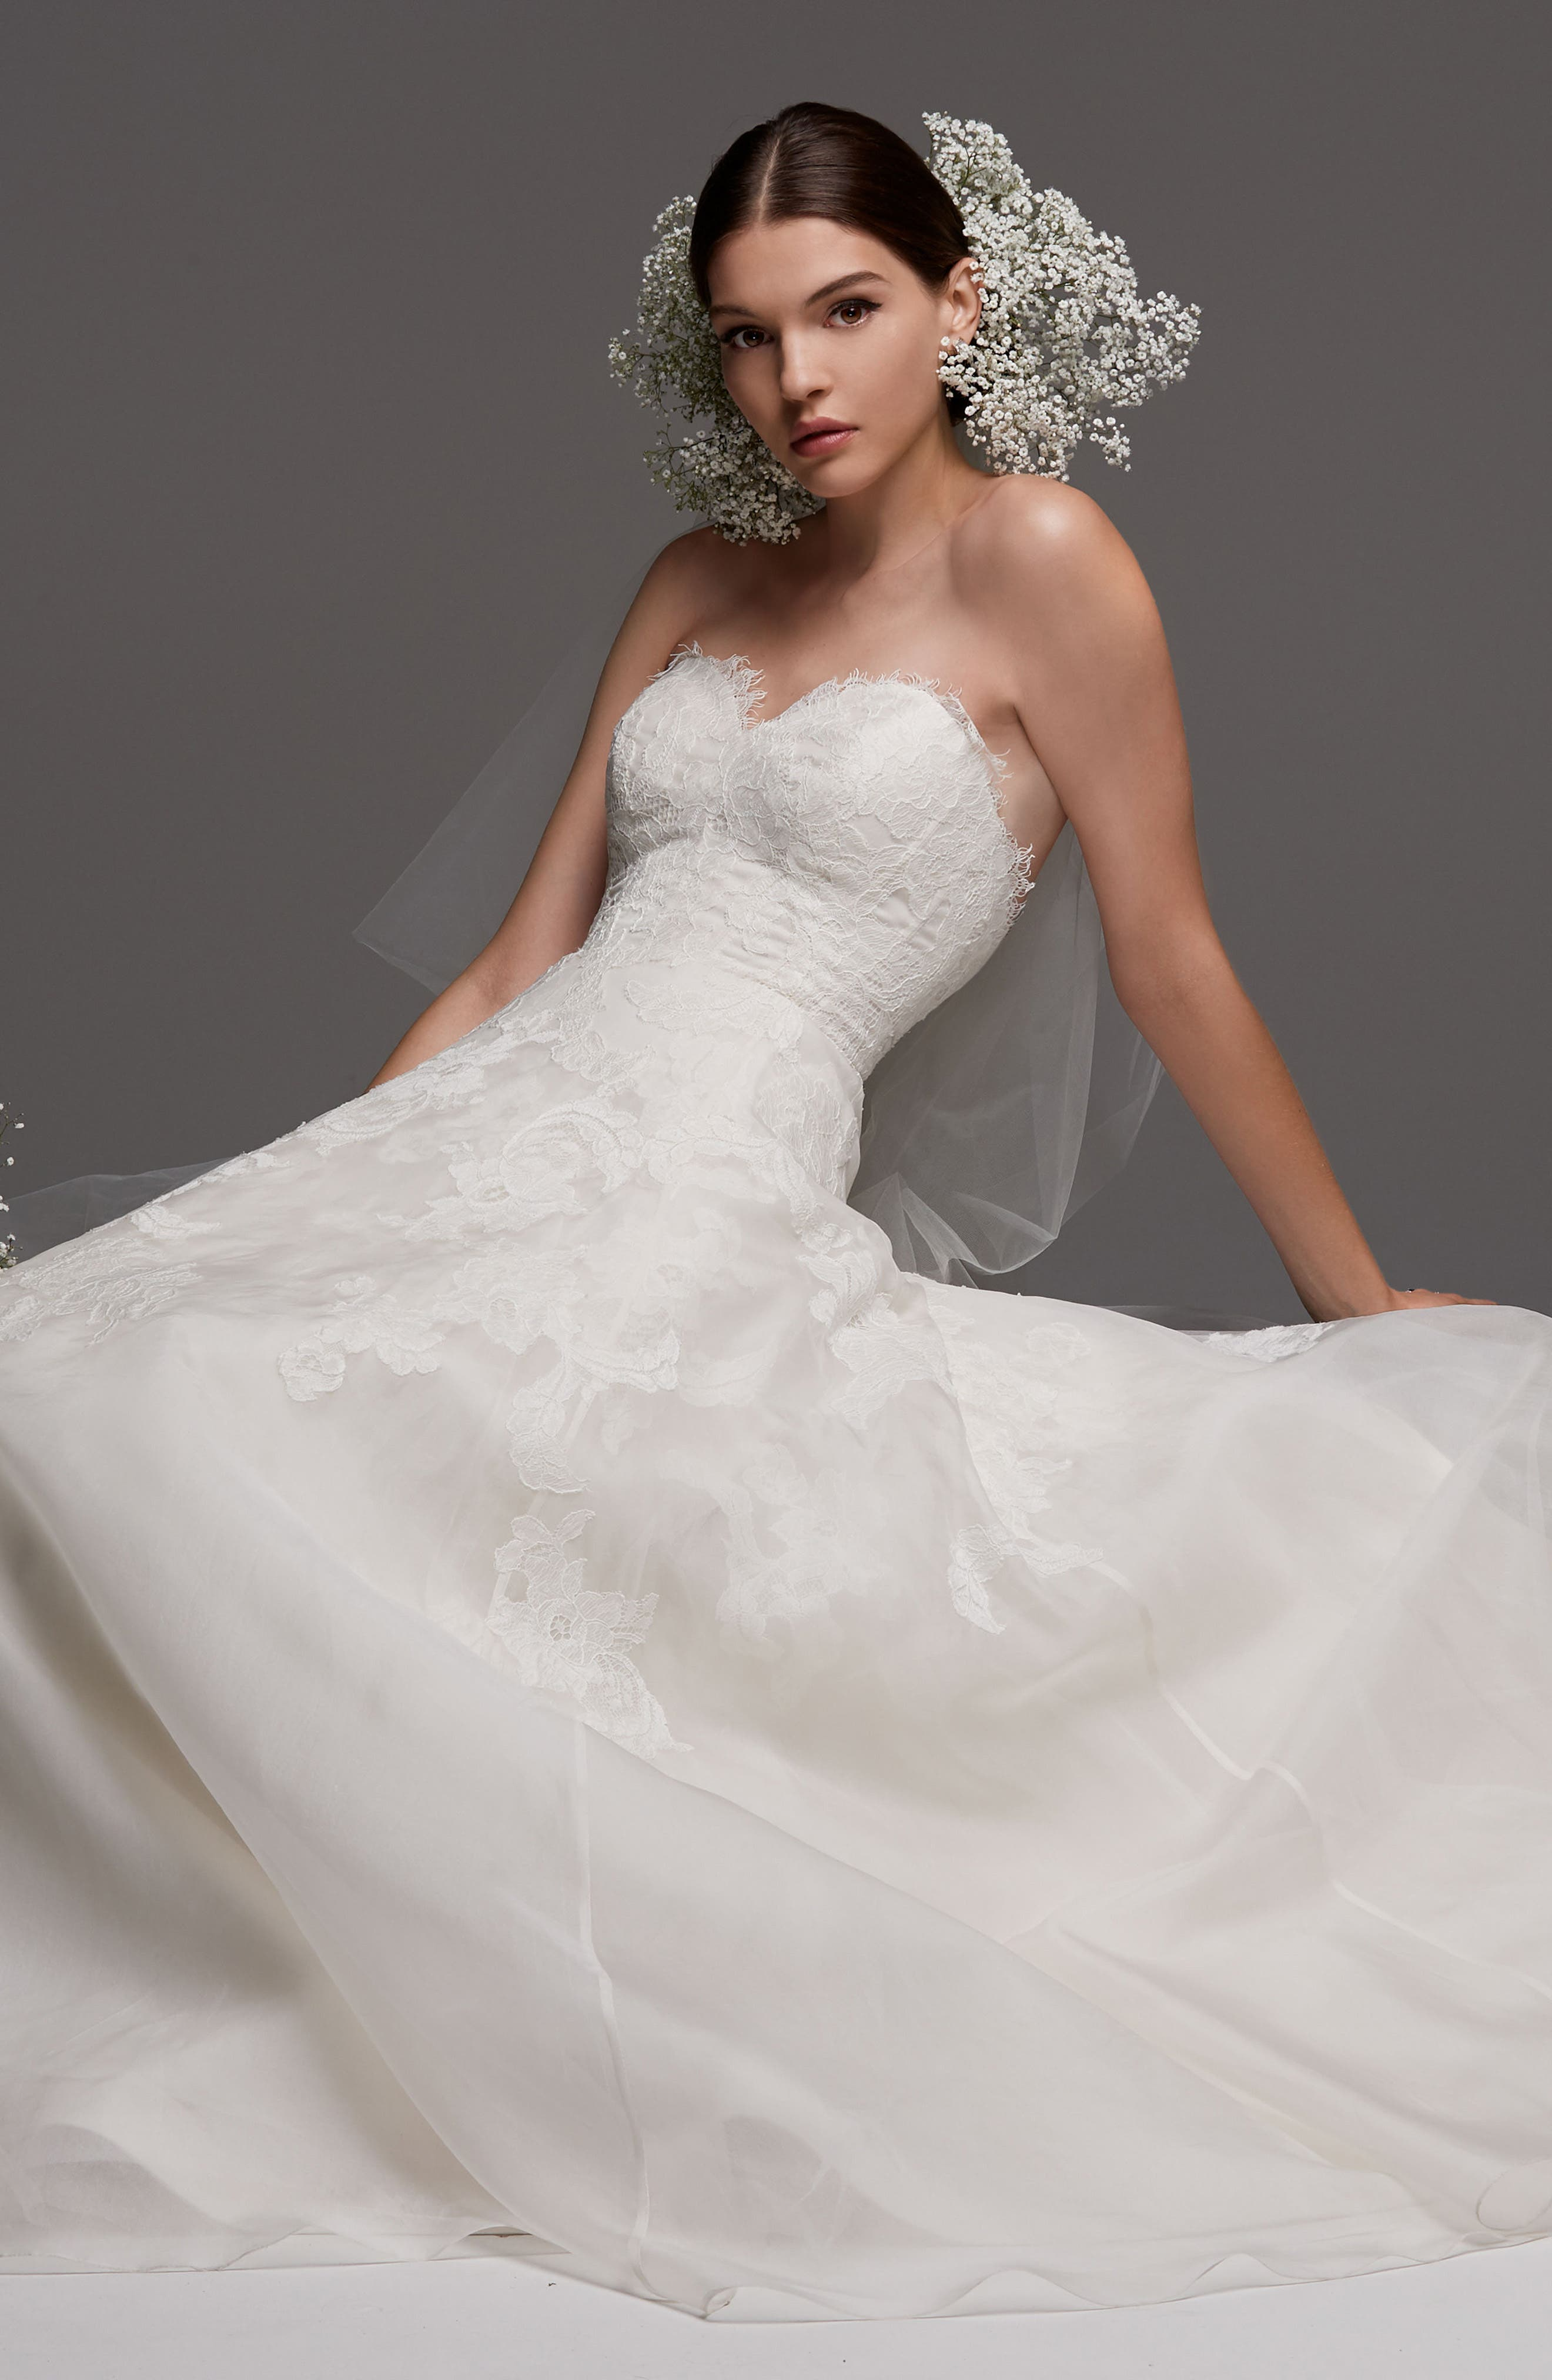 Luxembourg Strapless Lace & Organza Ballgown,                             Alternate thumbnail 3, color,                             Ivory